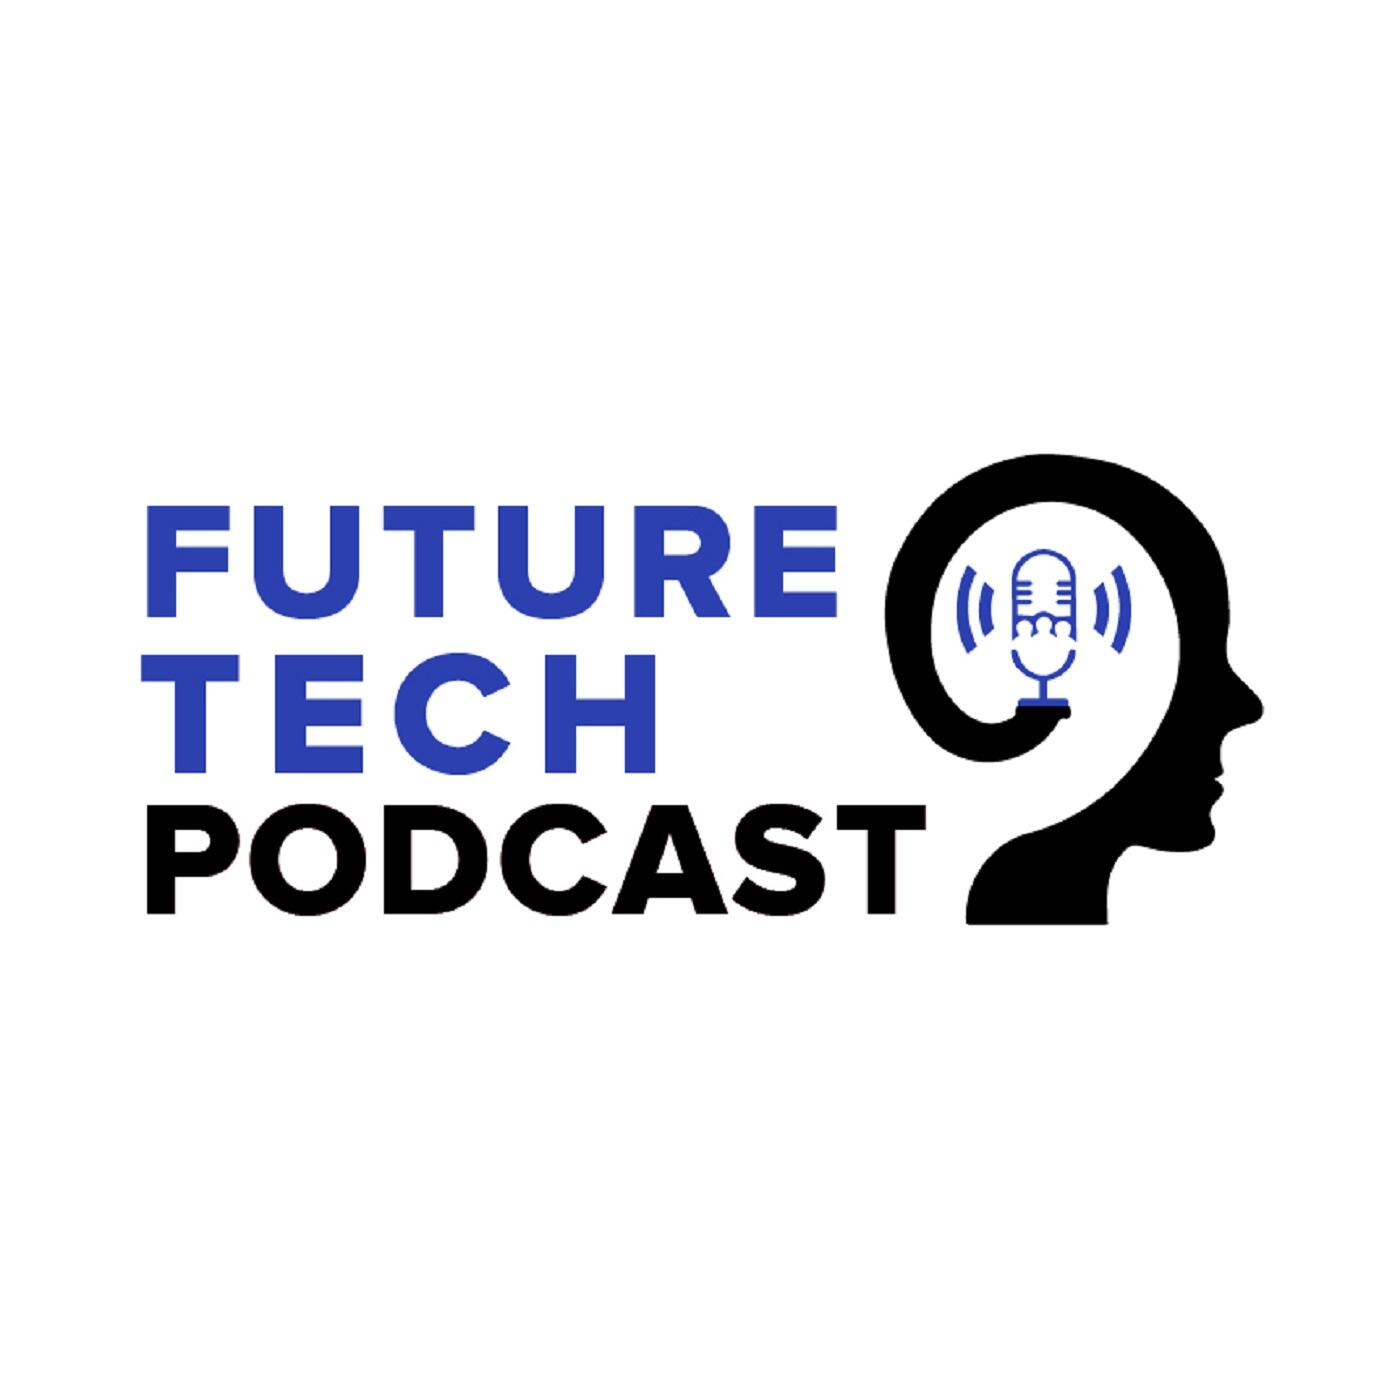 FutureTech Podcast